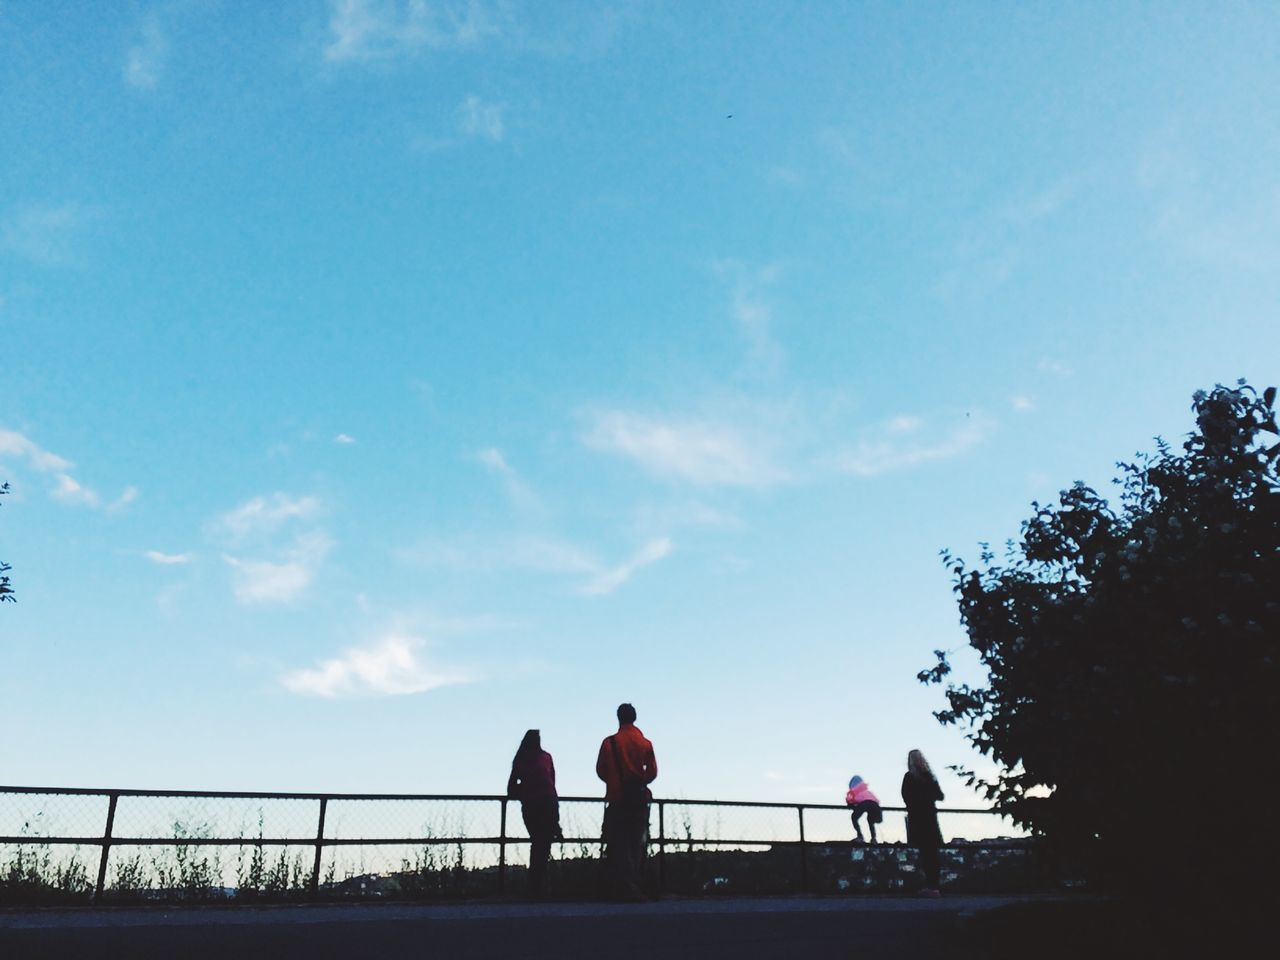 sky, togetherness, men, real people, friendship, leisure activity, walking, women, lifestyles, love, nature, silhouette, outdoors, day, people, adult